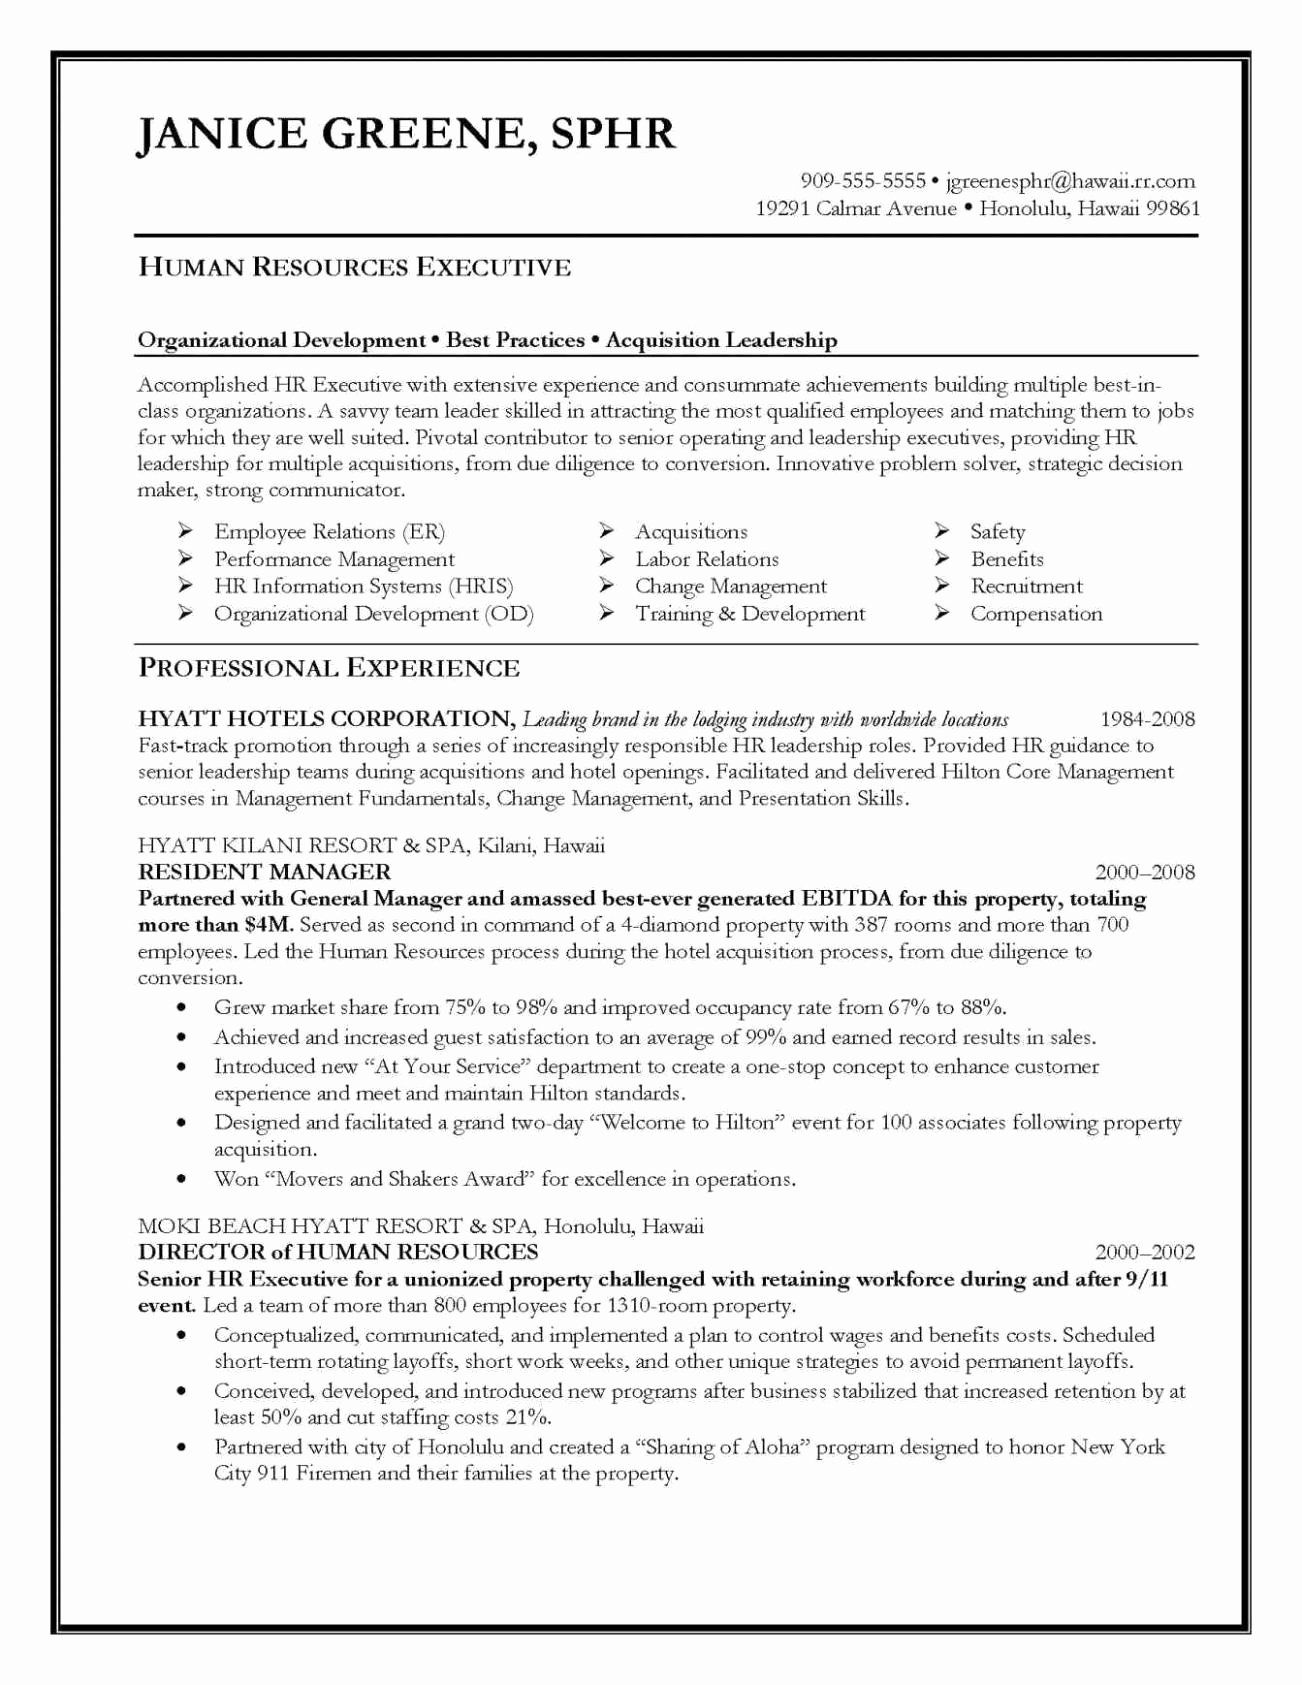 Entry Level Web Developer Resume Luxury Awesome Entry Level Java Developer Resume Sample In 2020 Resume Examples Human Resources Resume Resume Objective Examples